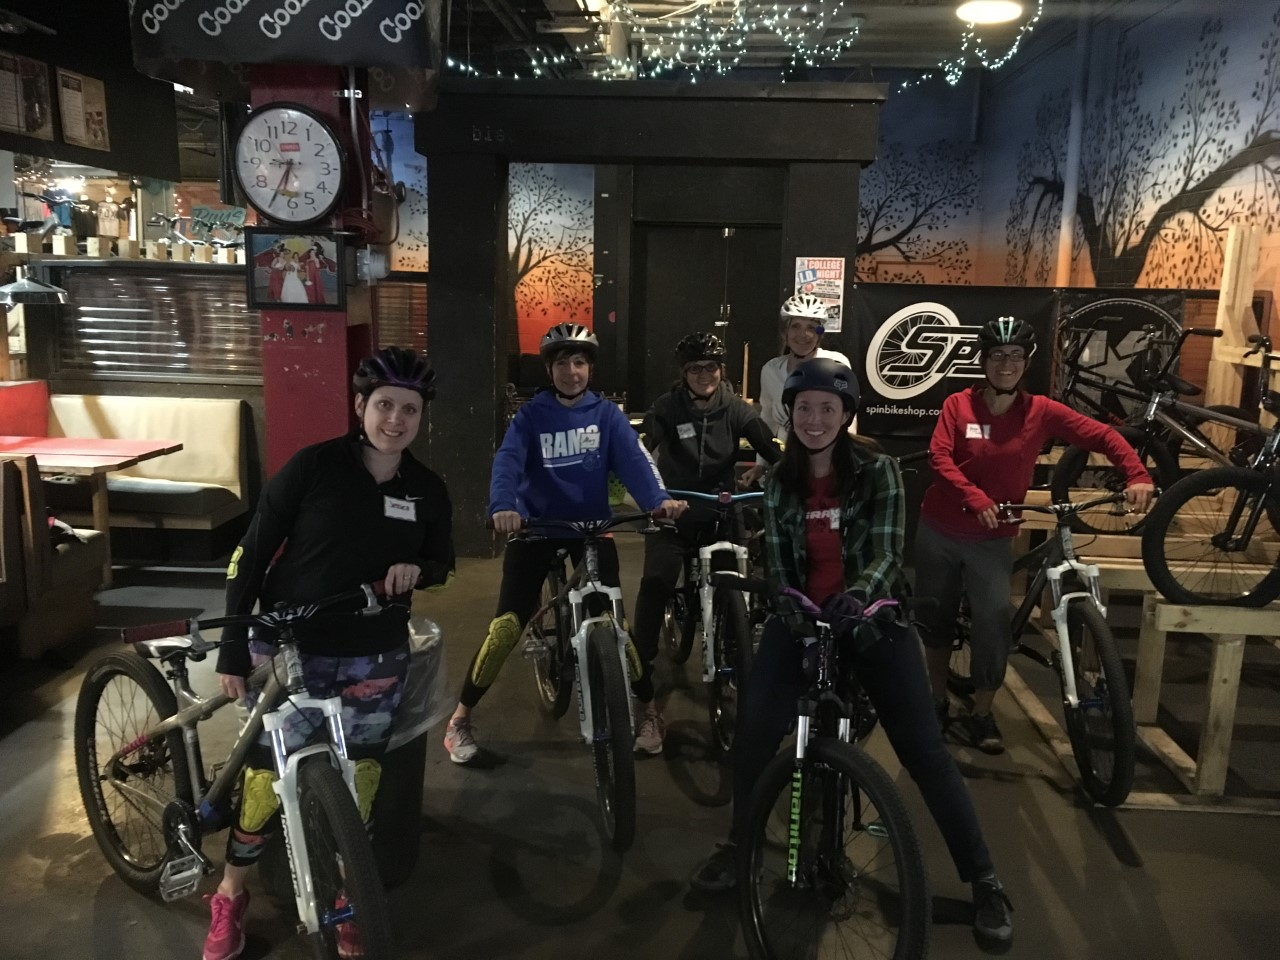 Ladies ride @ Ray's Indoor Bike Park, Cleveland | Feb, 2019